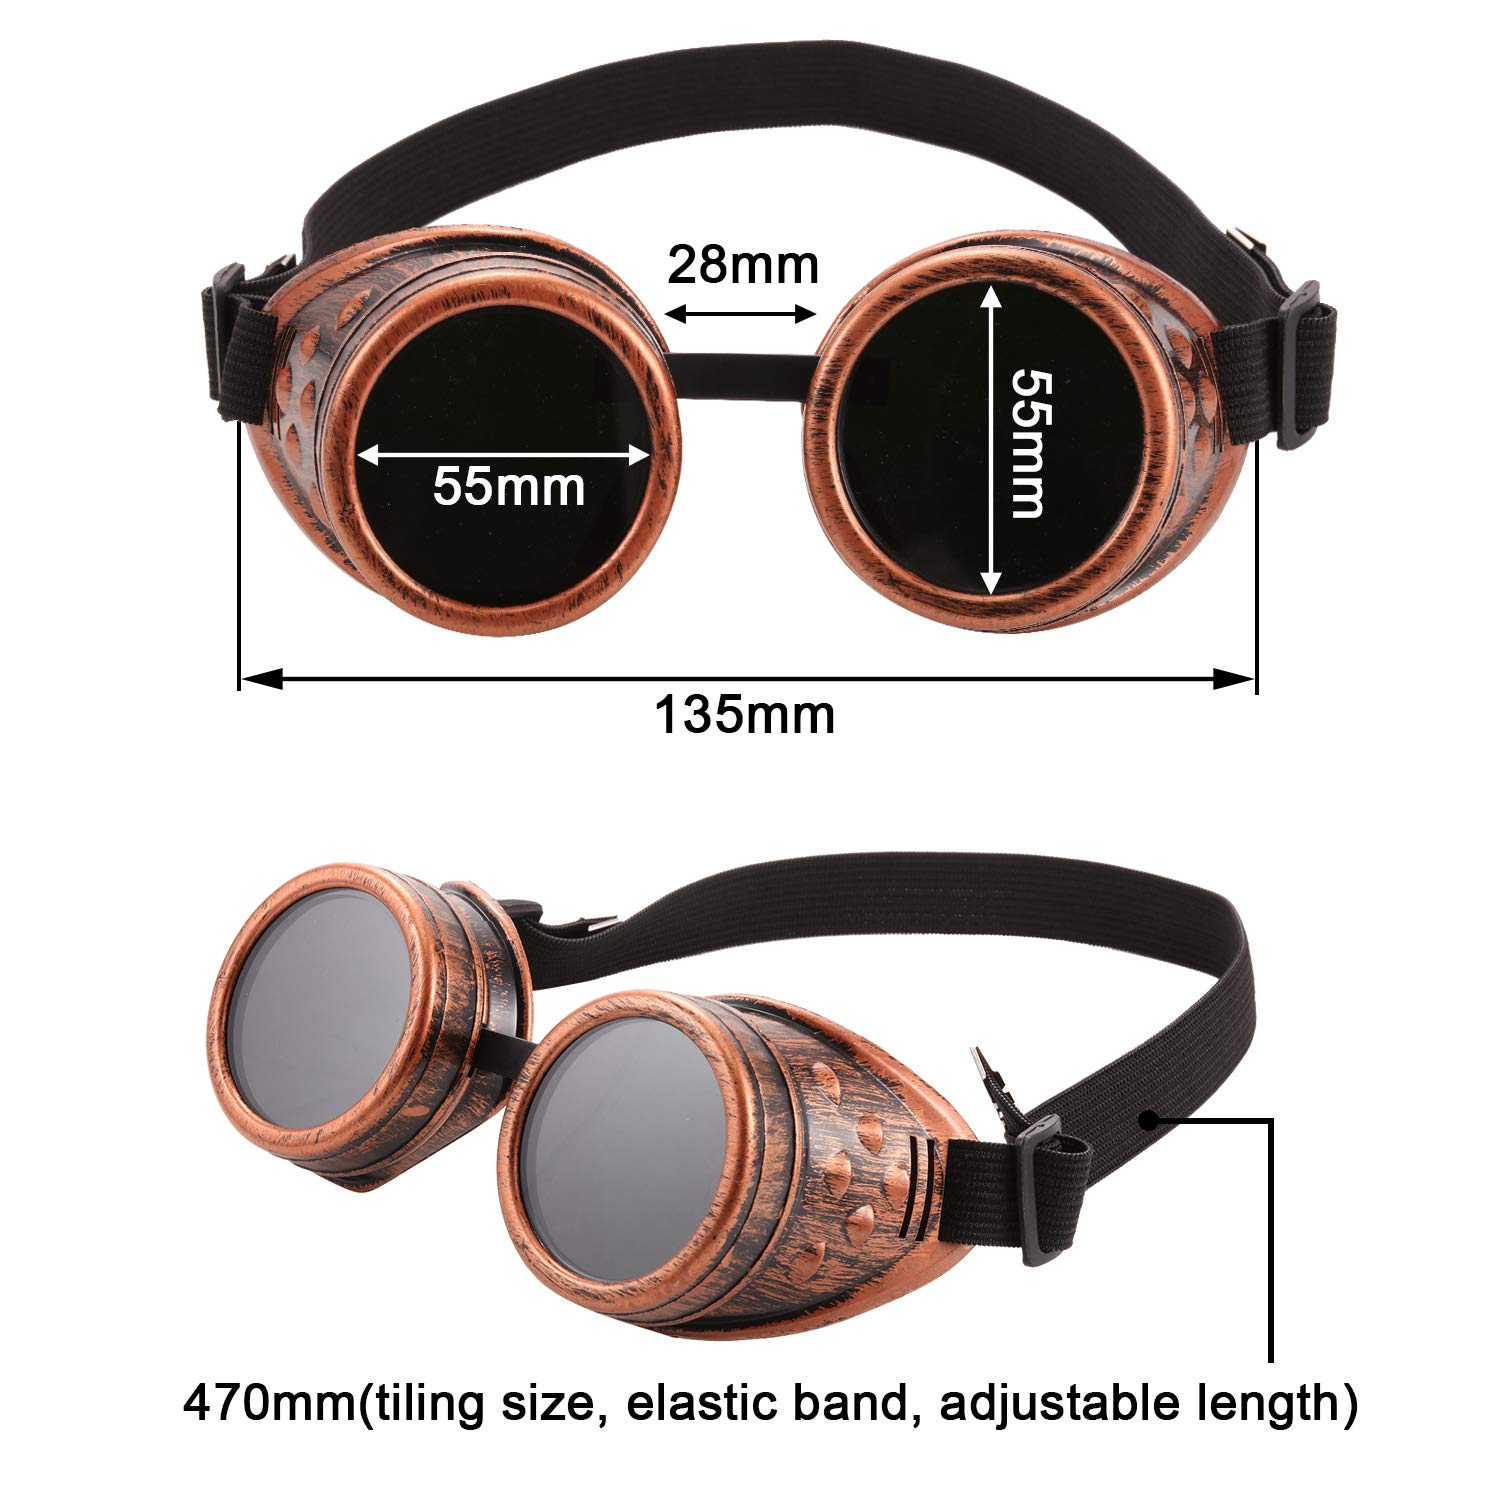 6 Pieces Vintage Victorian Steampunk Goggles Glasses Welding Cyberpunk Sunglasses for Gothic Cosplay Costume Accessories Color Set 1